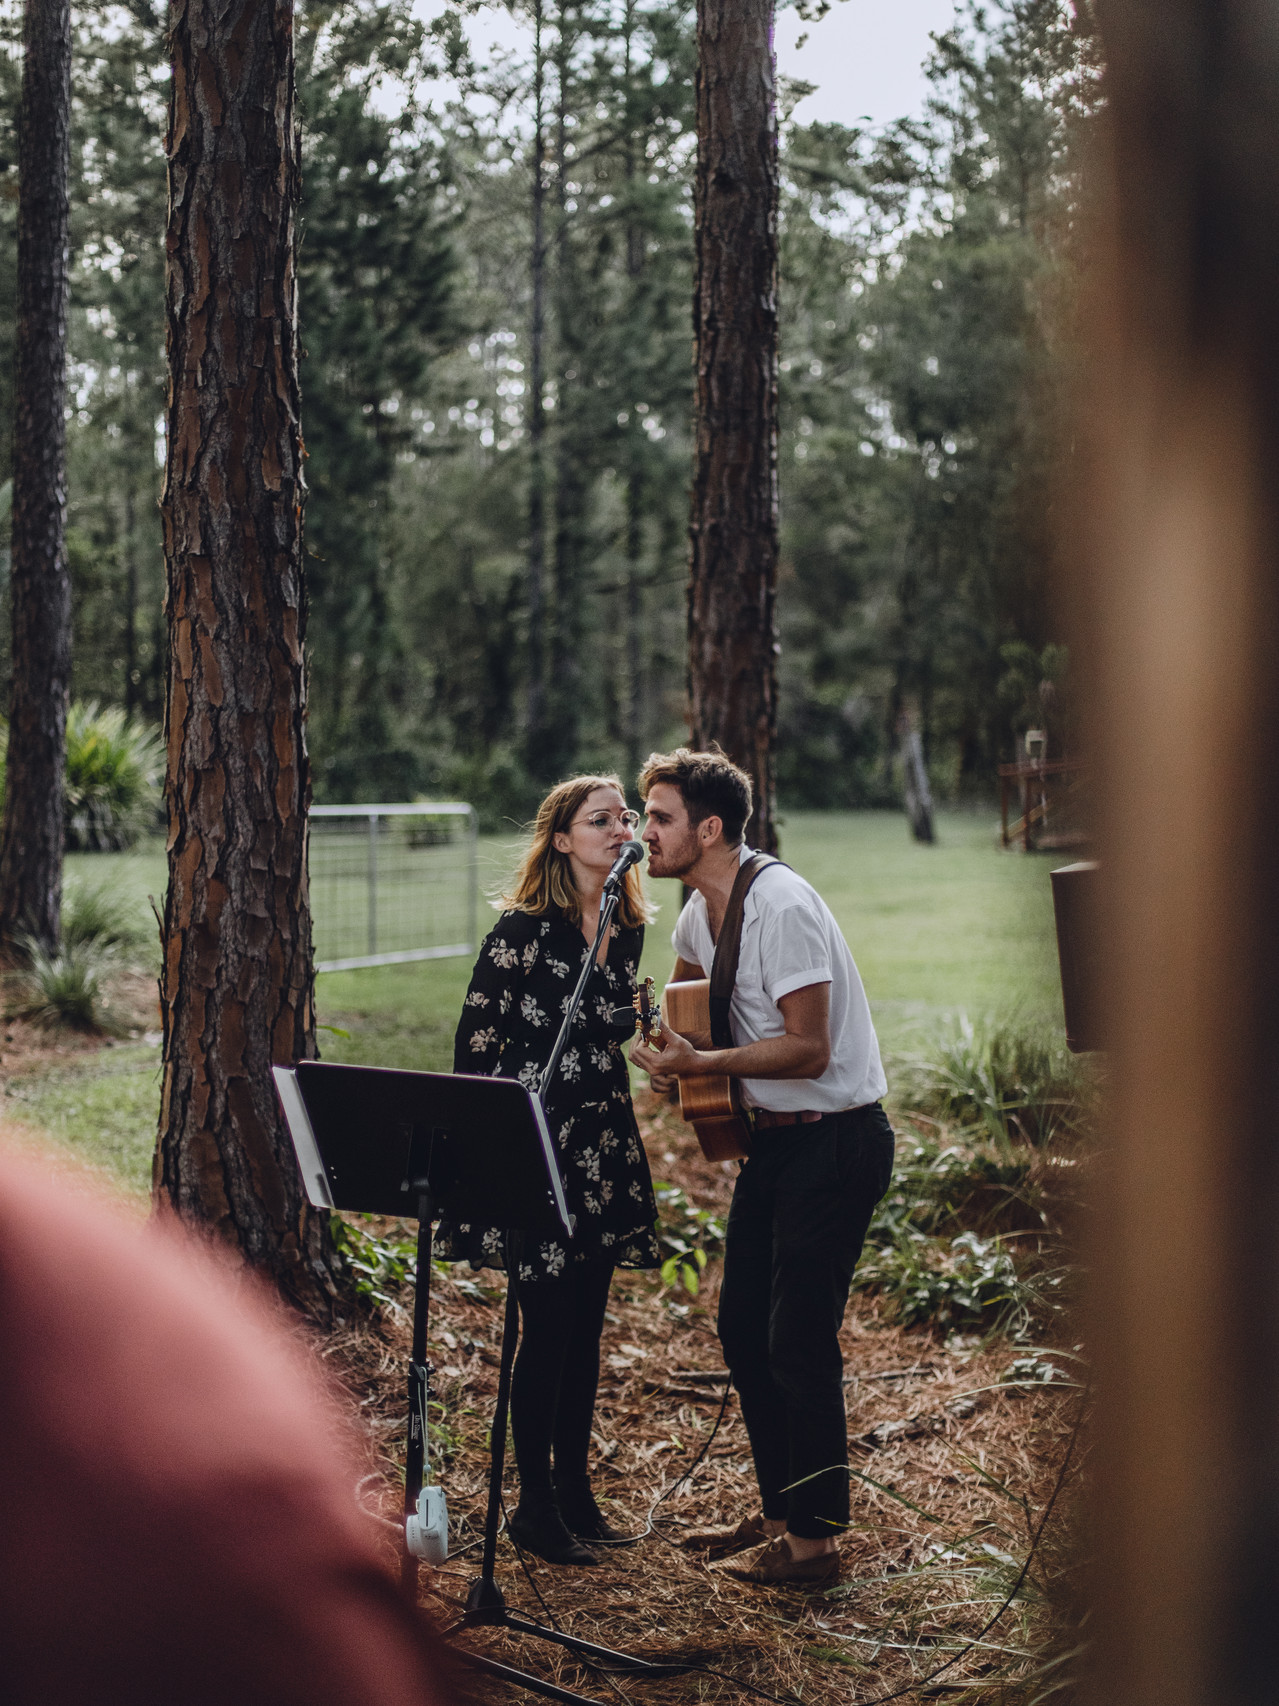 """Sunshine Coast wedding singers """"The Famo's"""" perform at a Newley wedded couples ceremony at Noosa's wedding venue 'The Barn"""" ."""